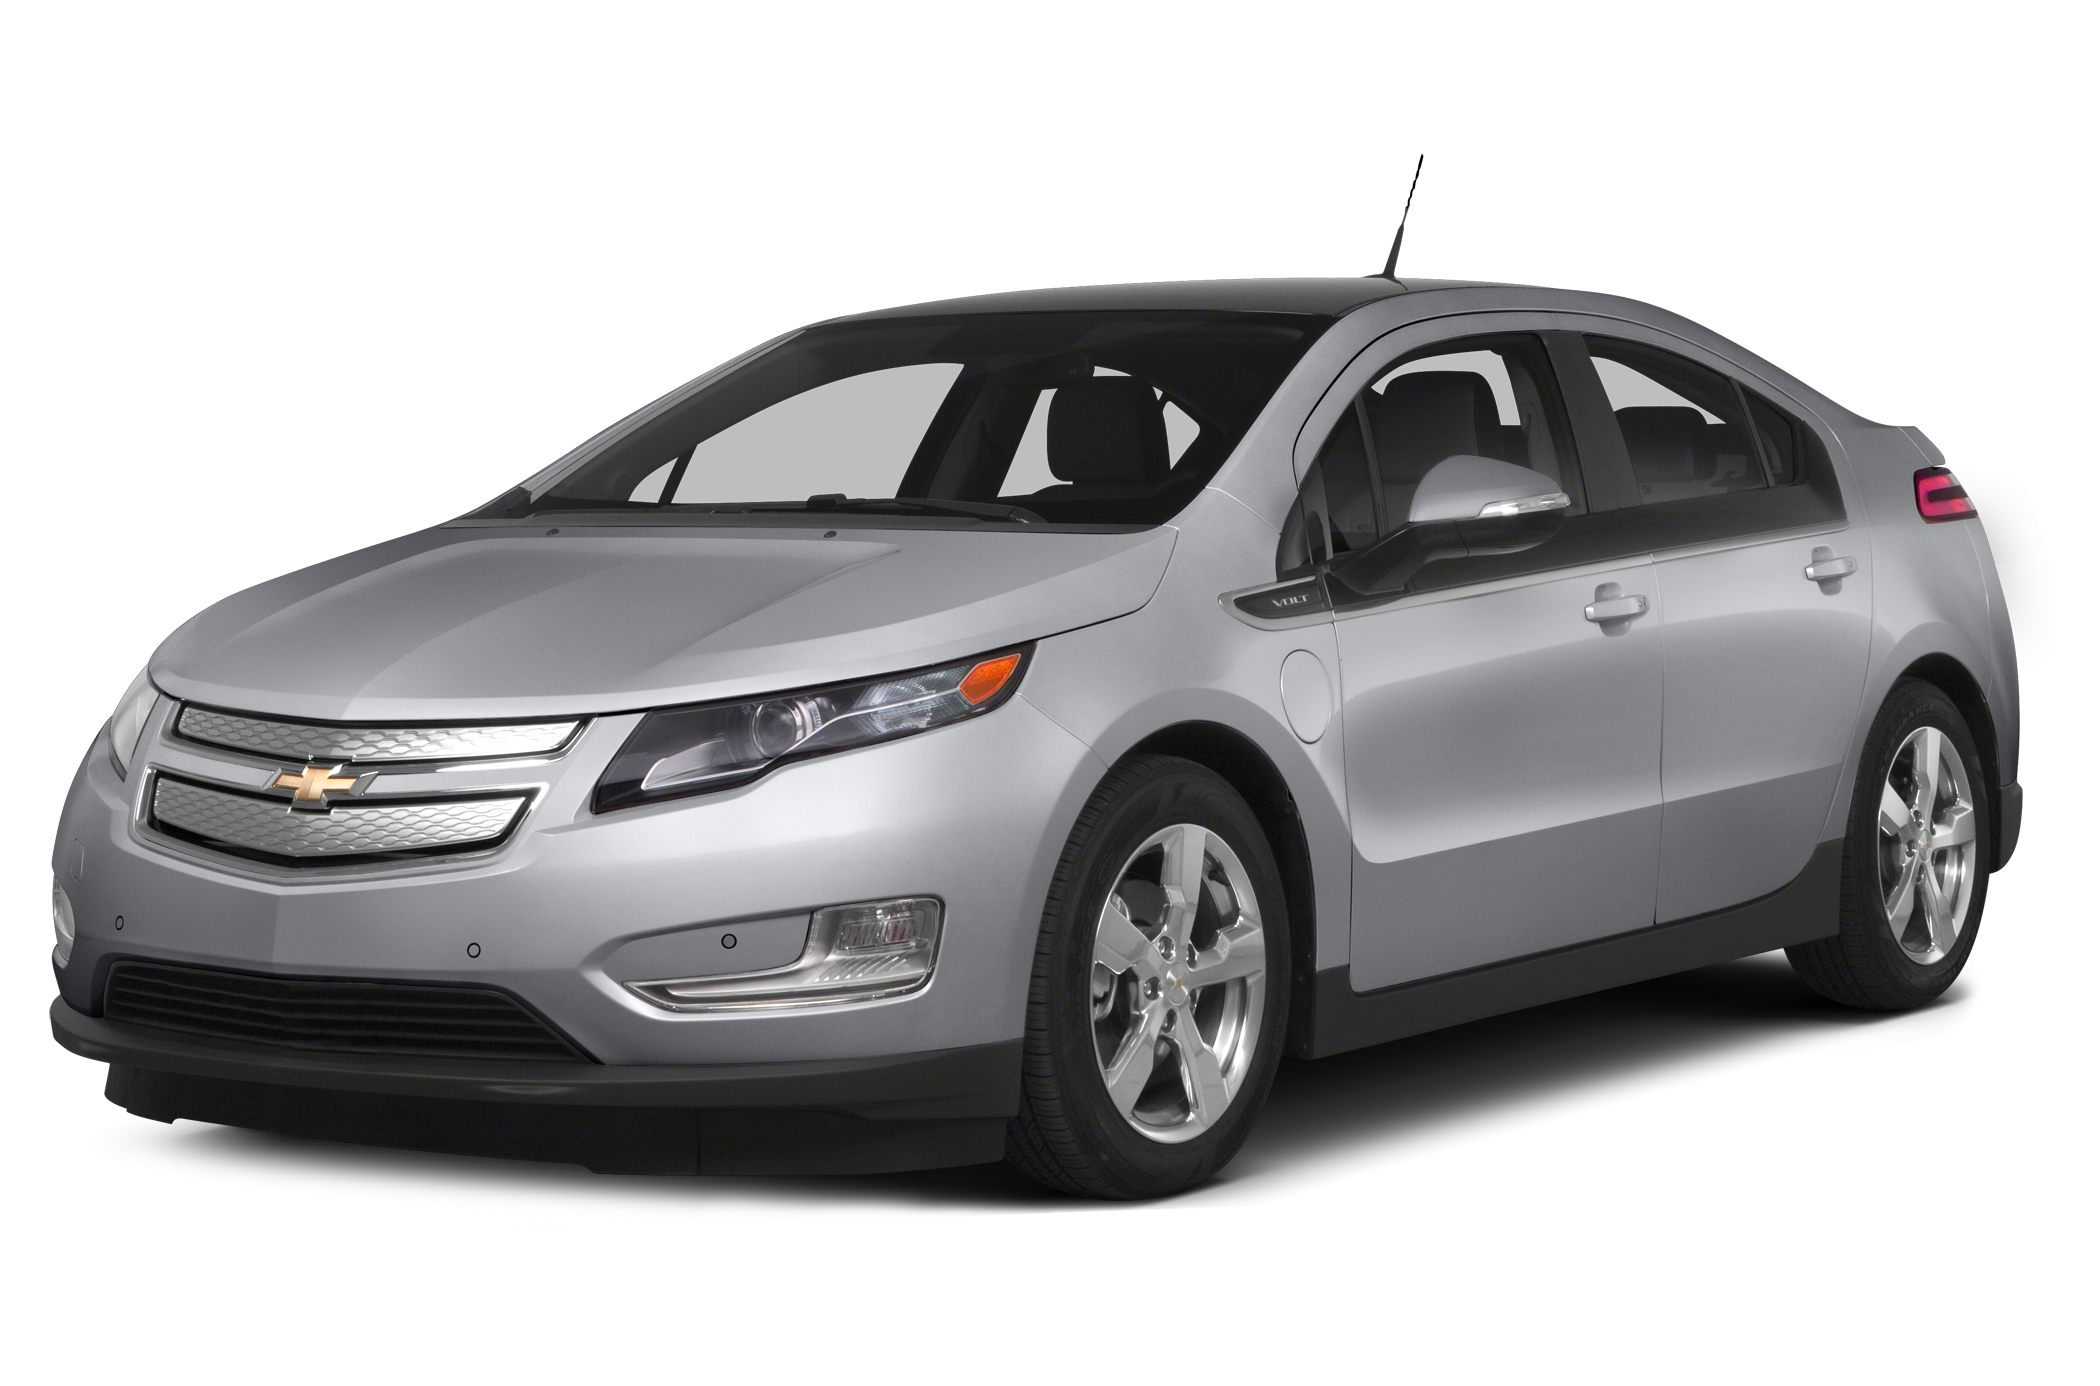 2015 Chevrolet Volt Base Hatchback for sale in Ankeny for $35,945 with 0 miles